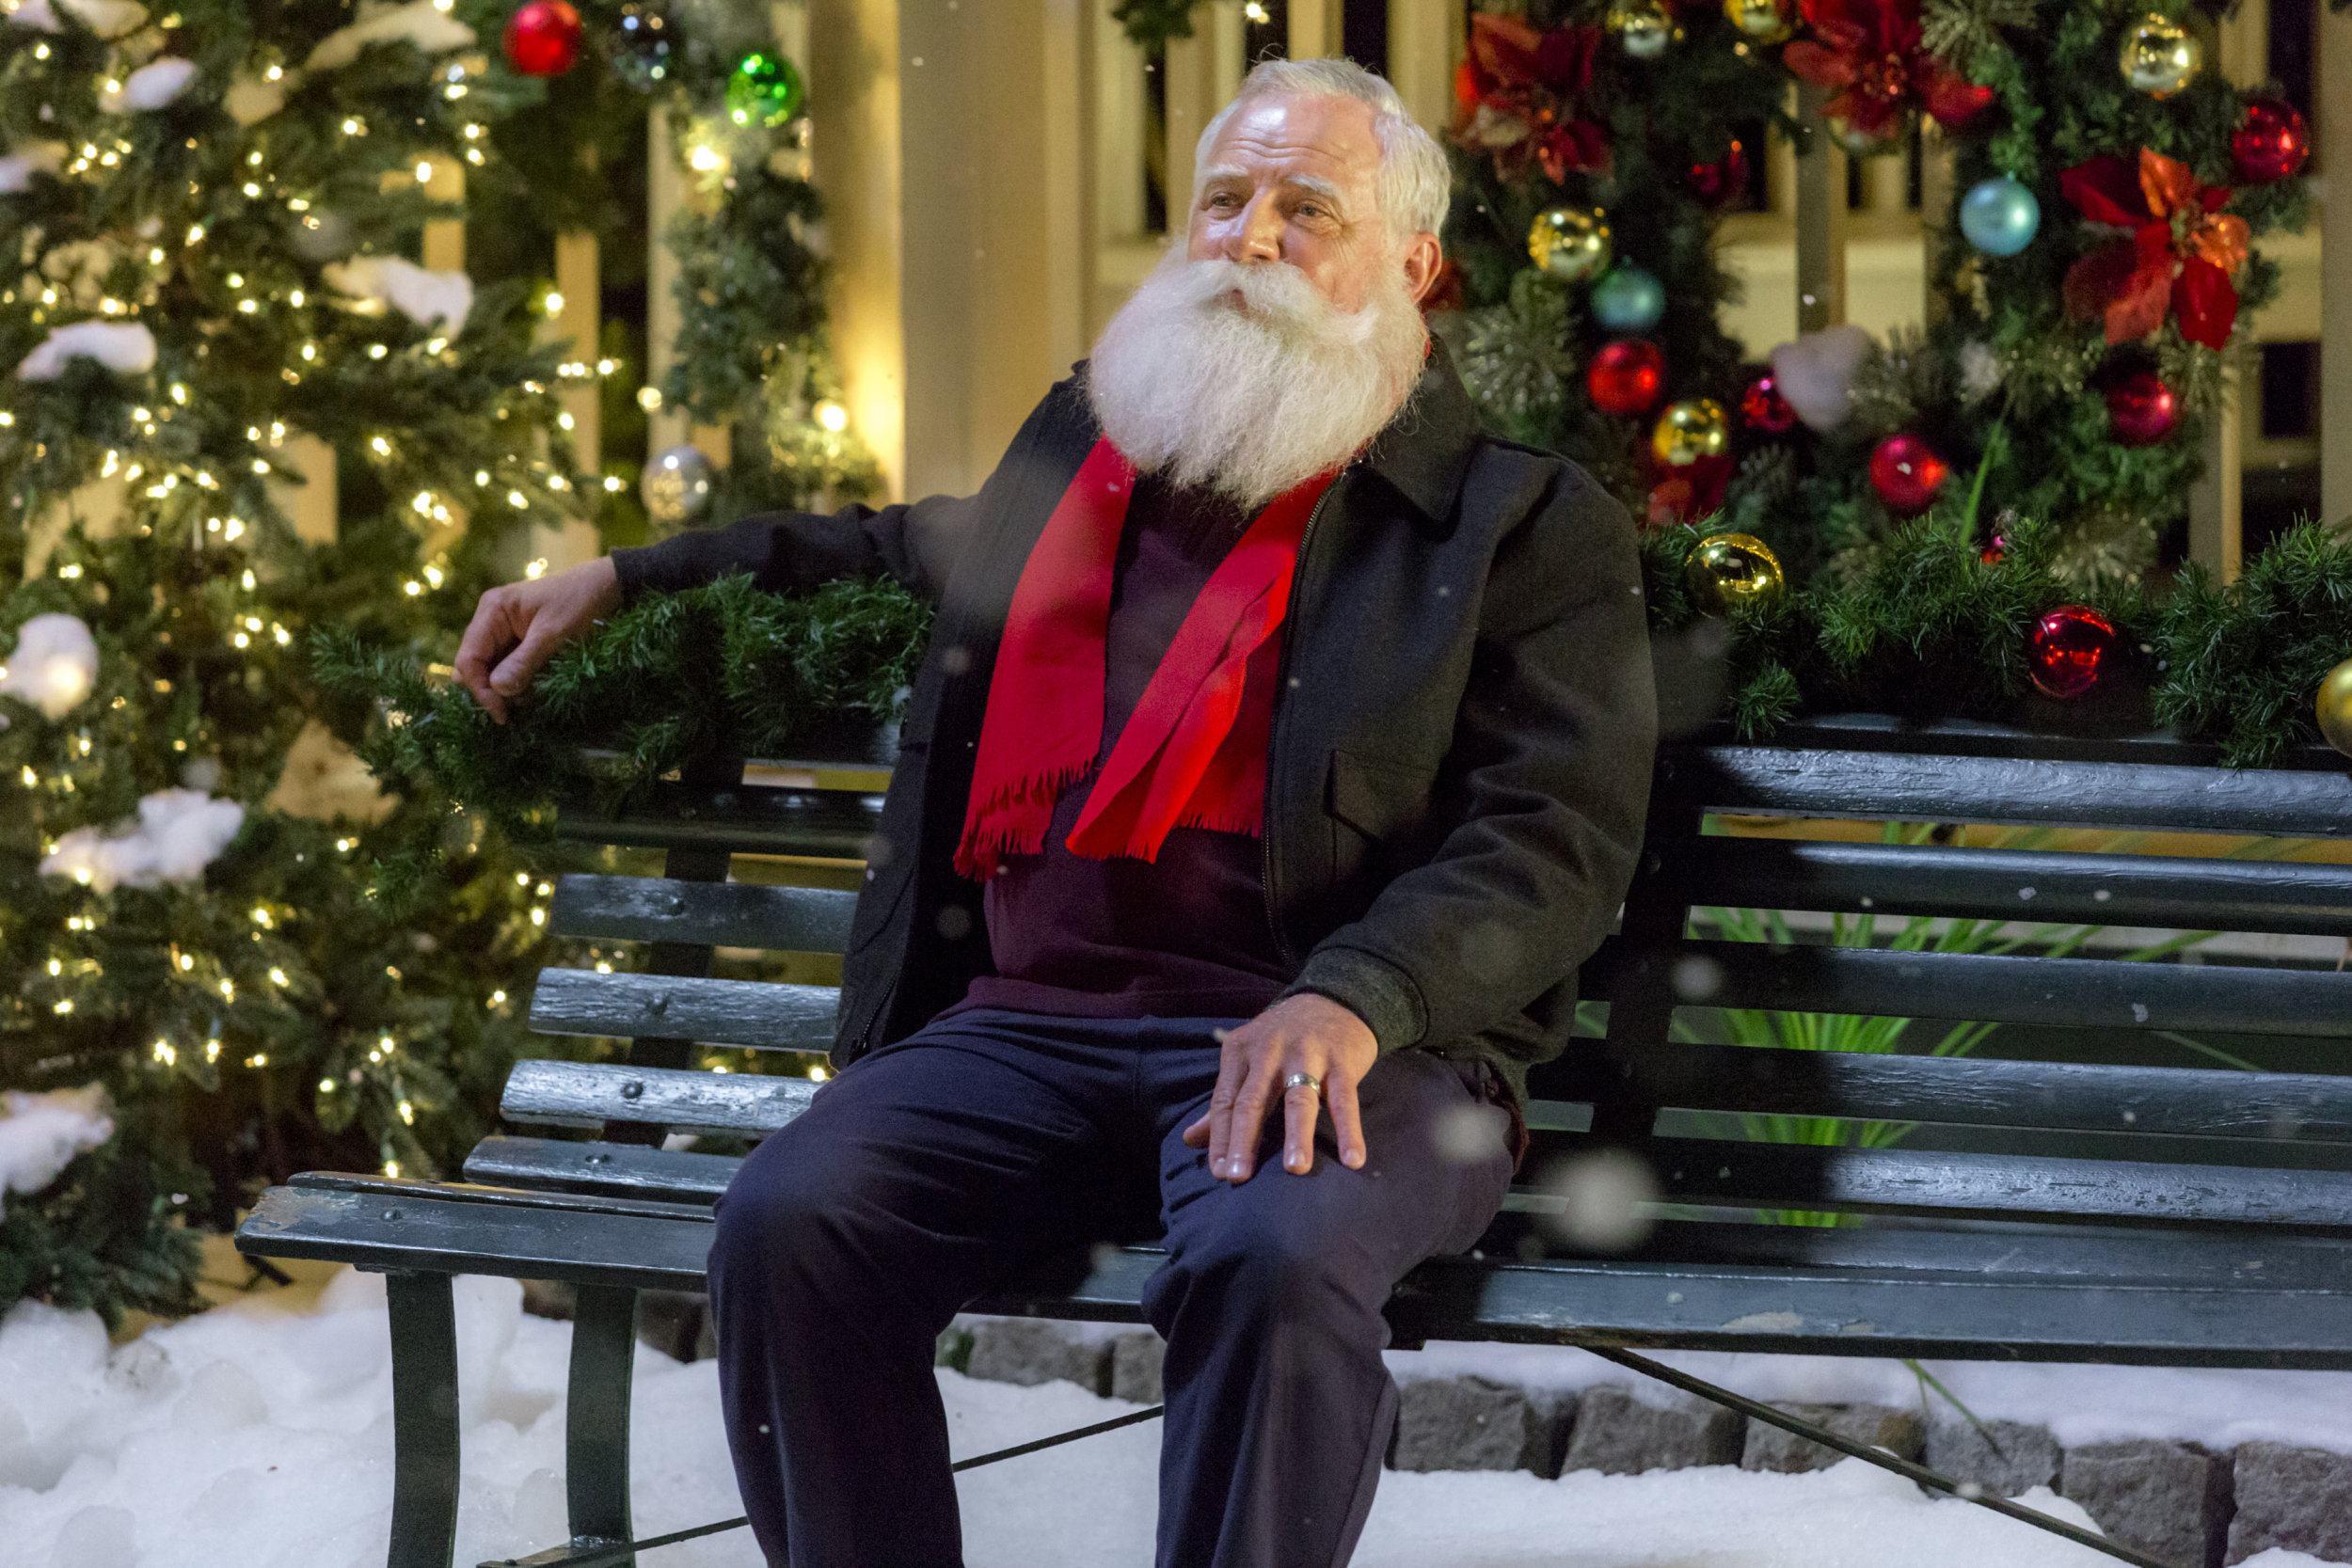 Keith Martin Gordey in Christmas in Evergreen (2017)